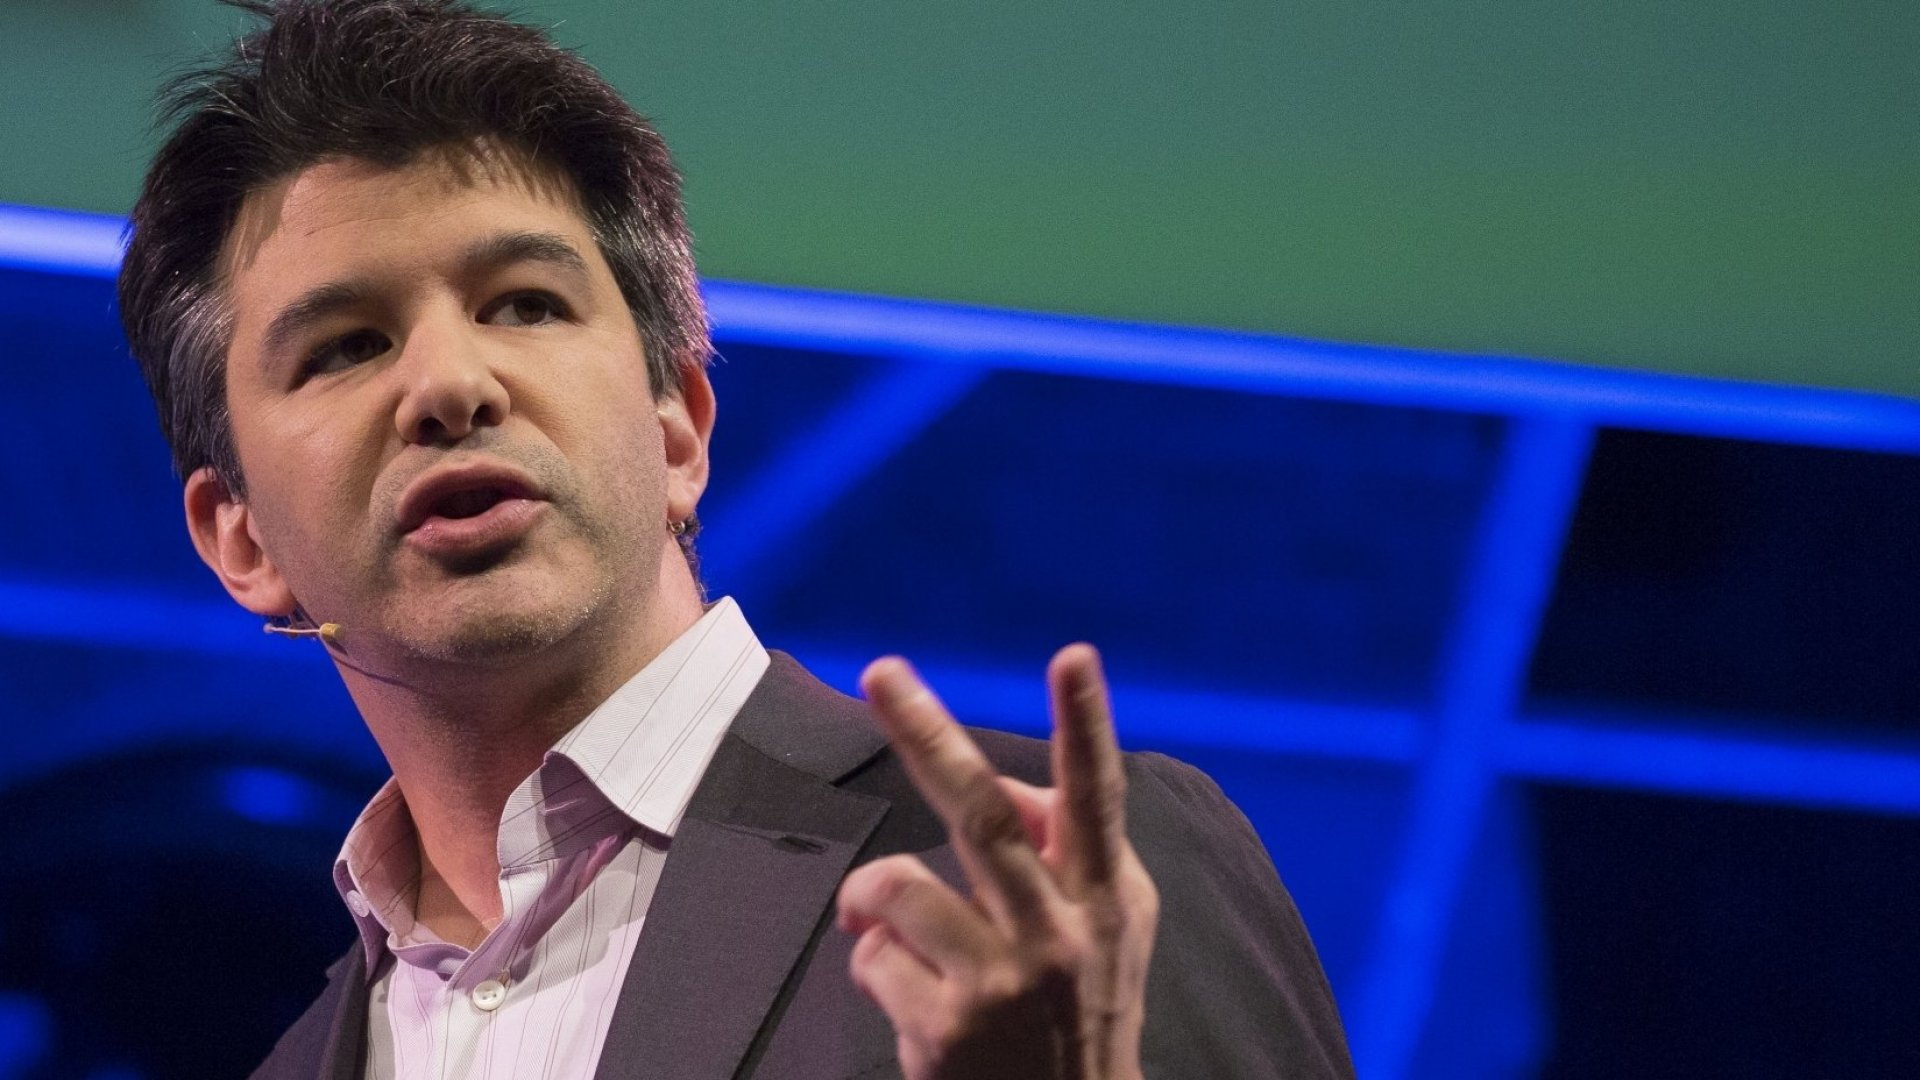 Uber CEO Travis Kalanick Is Looking for a Second-in-Command